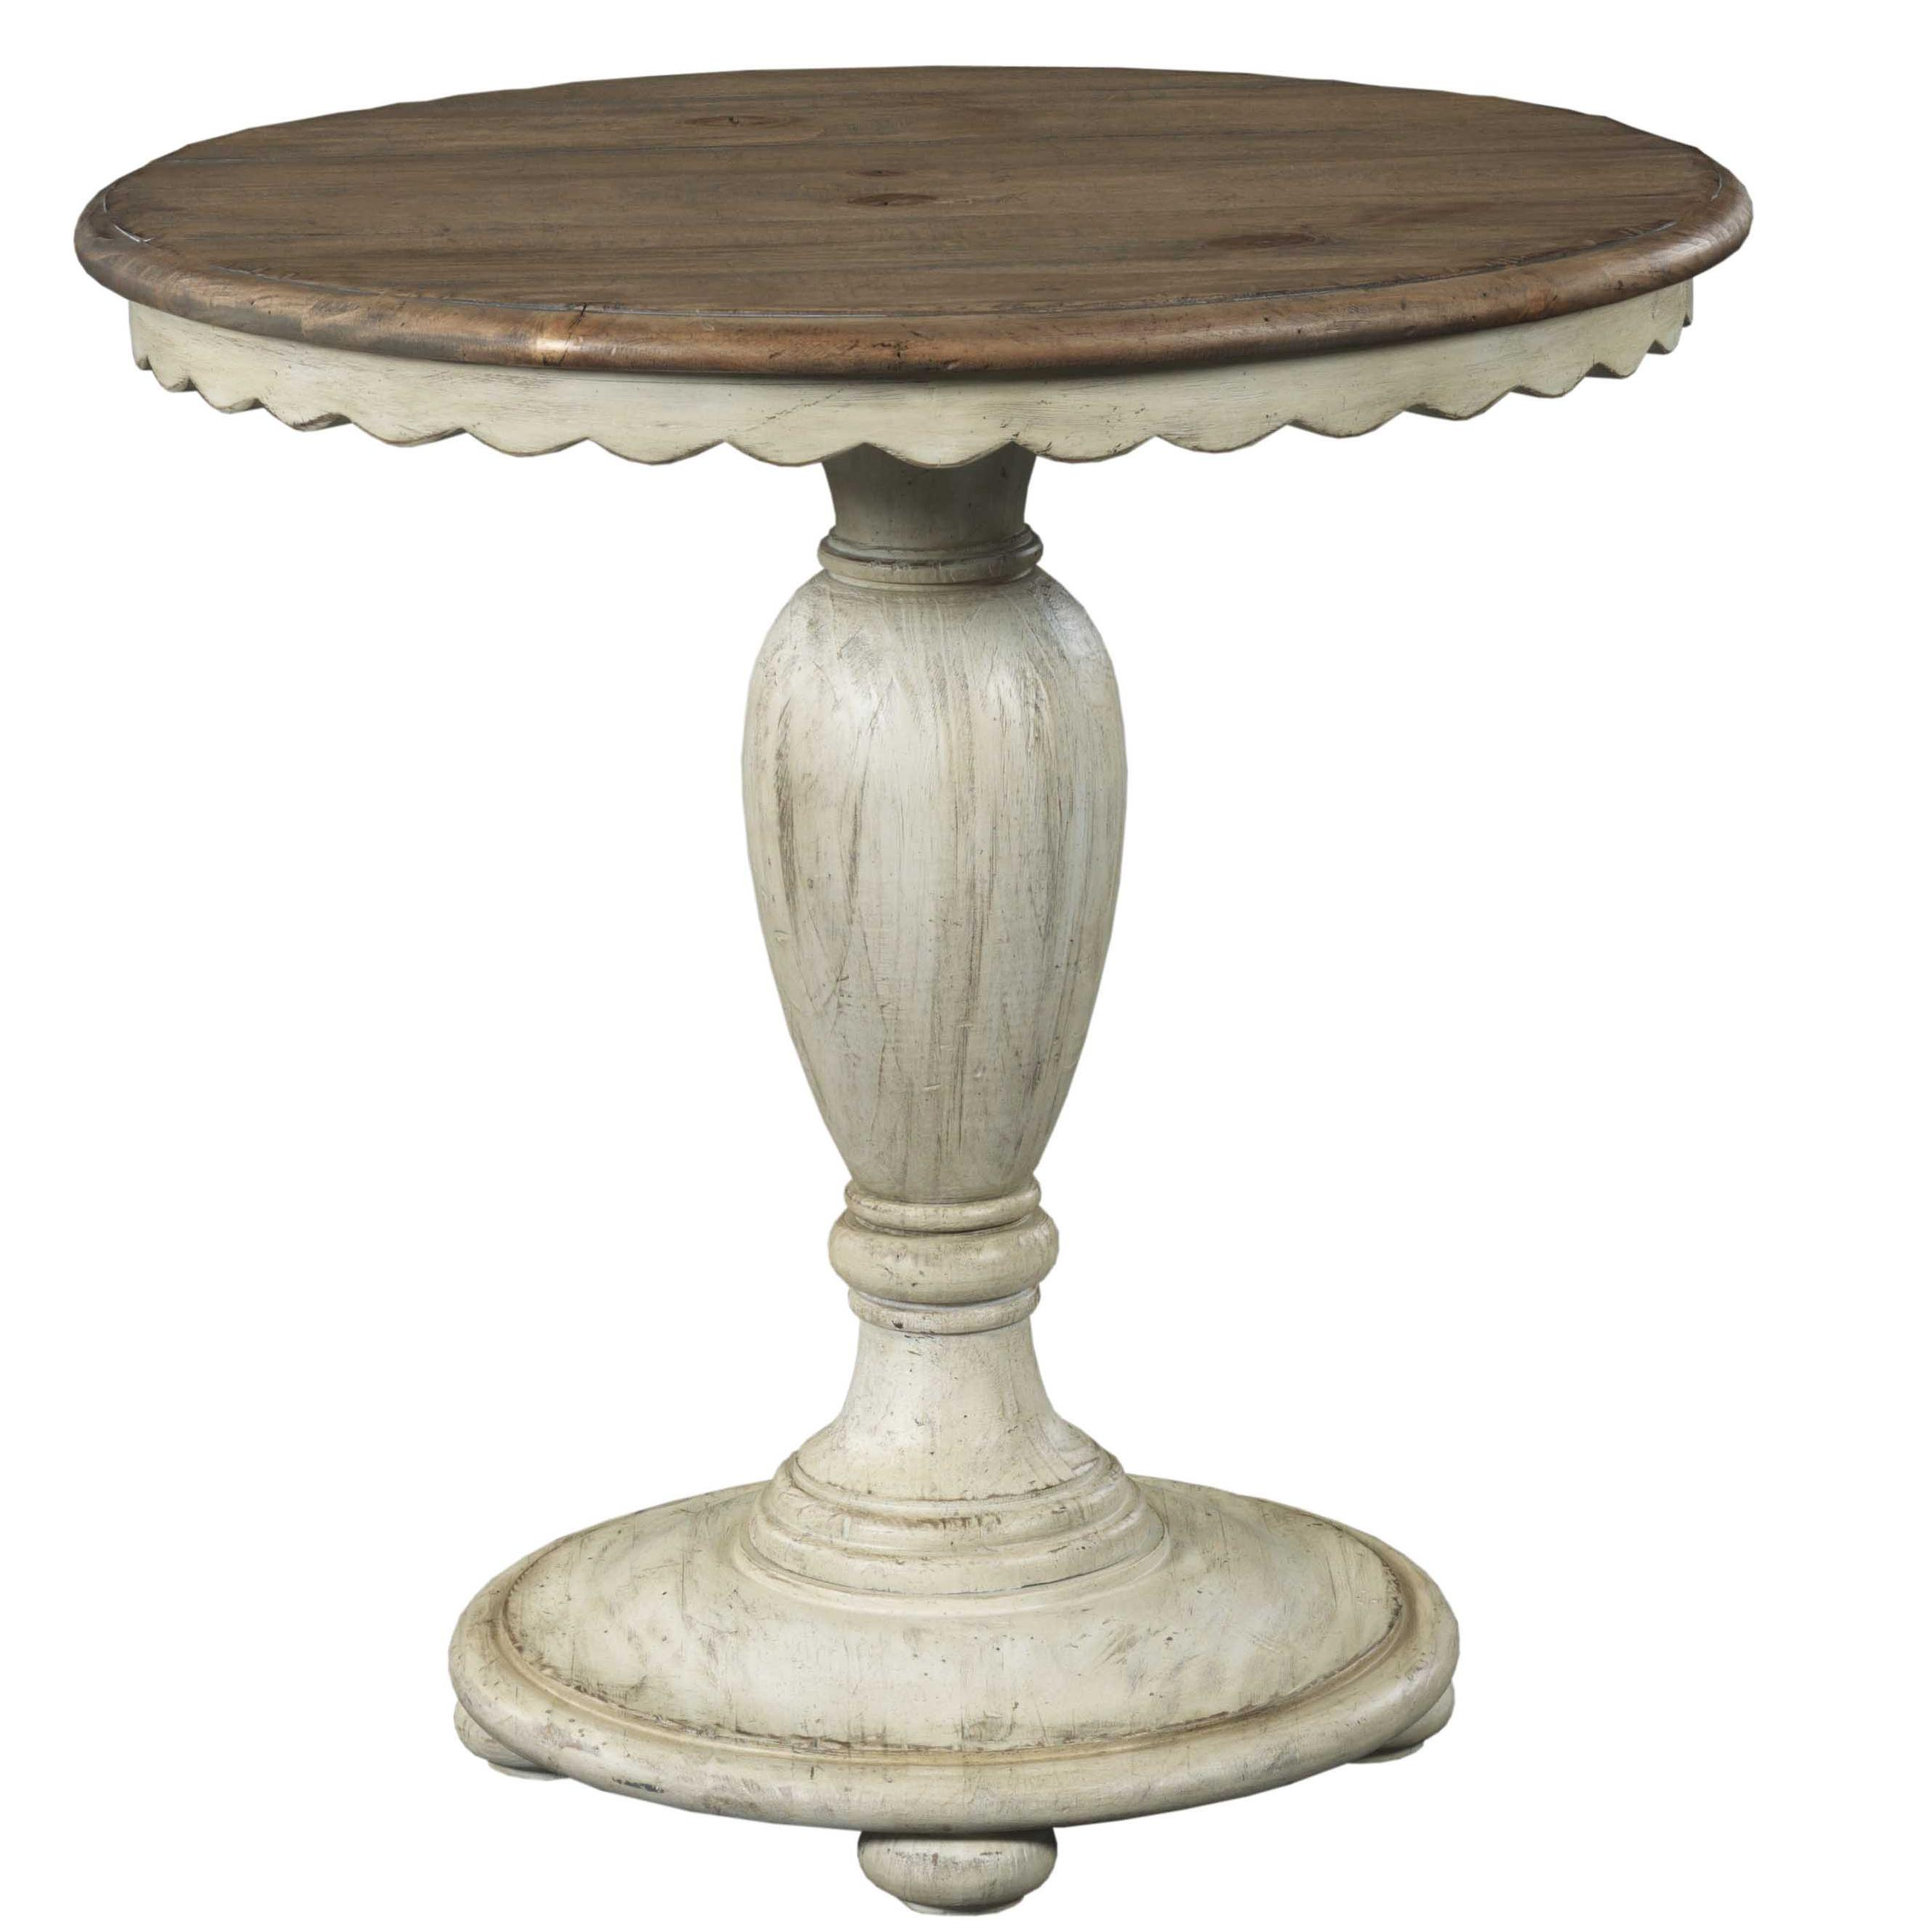 kincaid furniture weatherford round accent table with scalloped products color cornsilk tables beverage tub stand carpet door plates small trestle legs pier one imports coffee